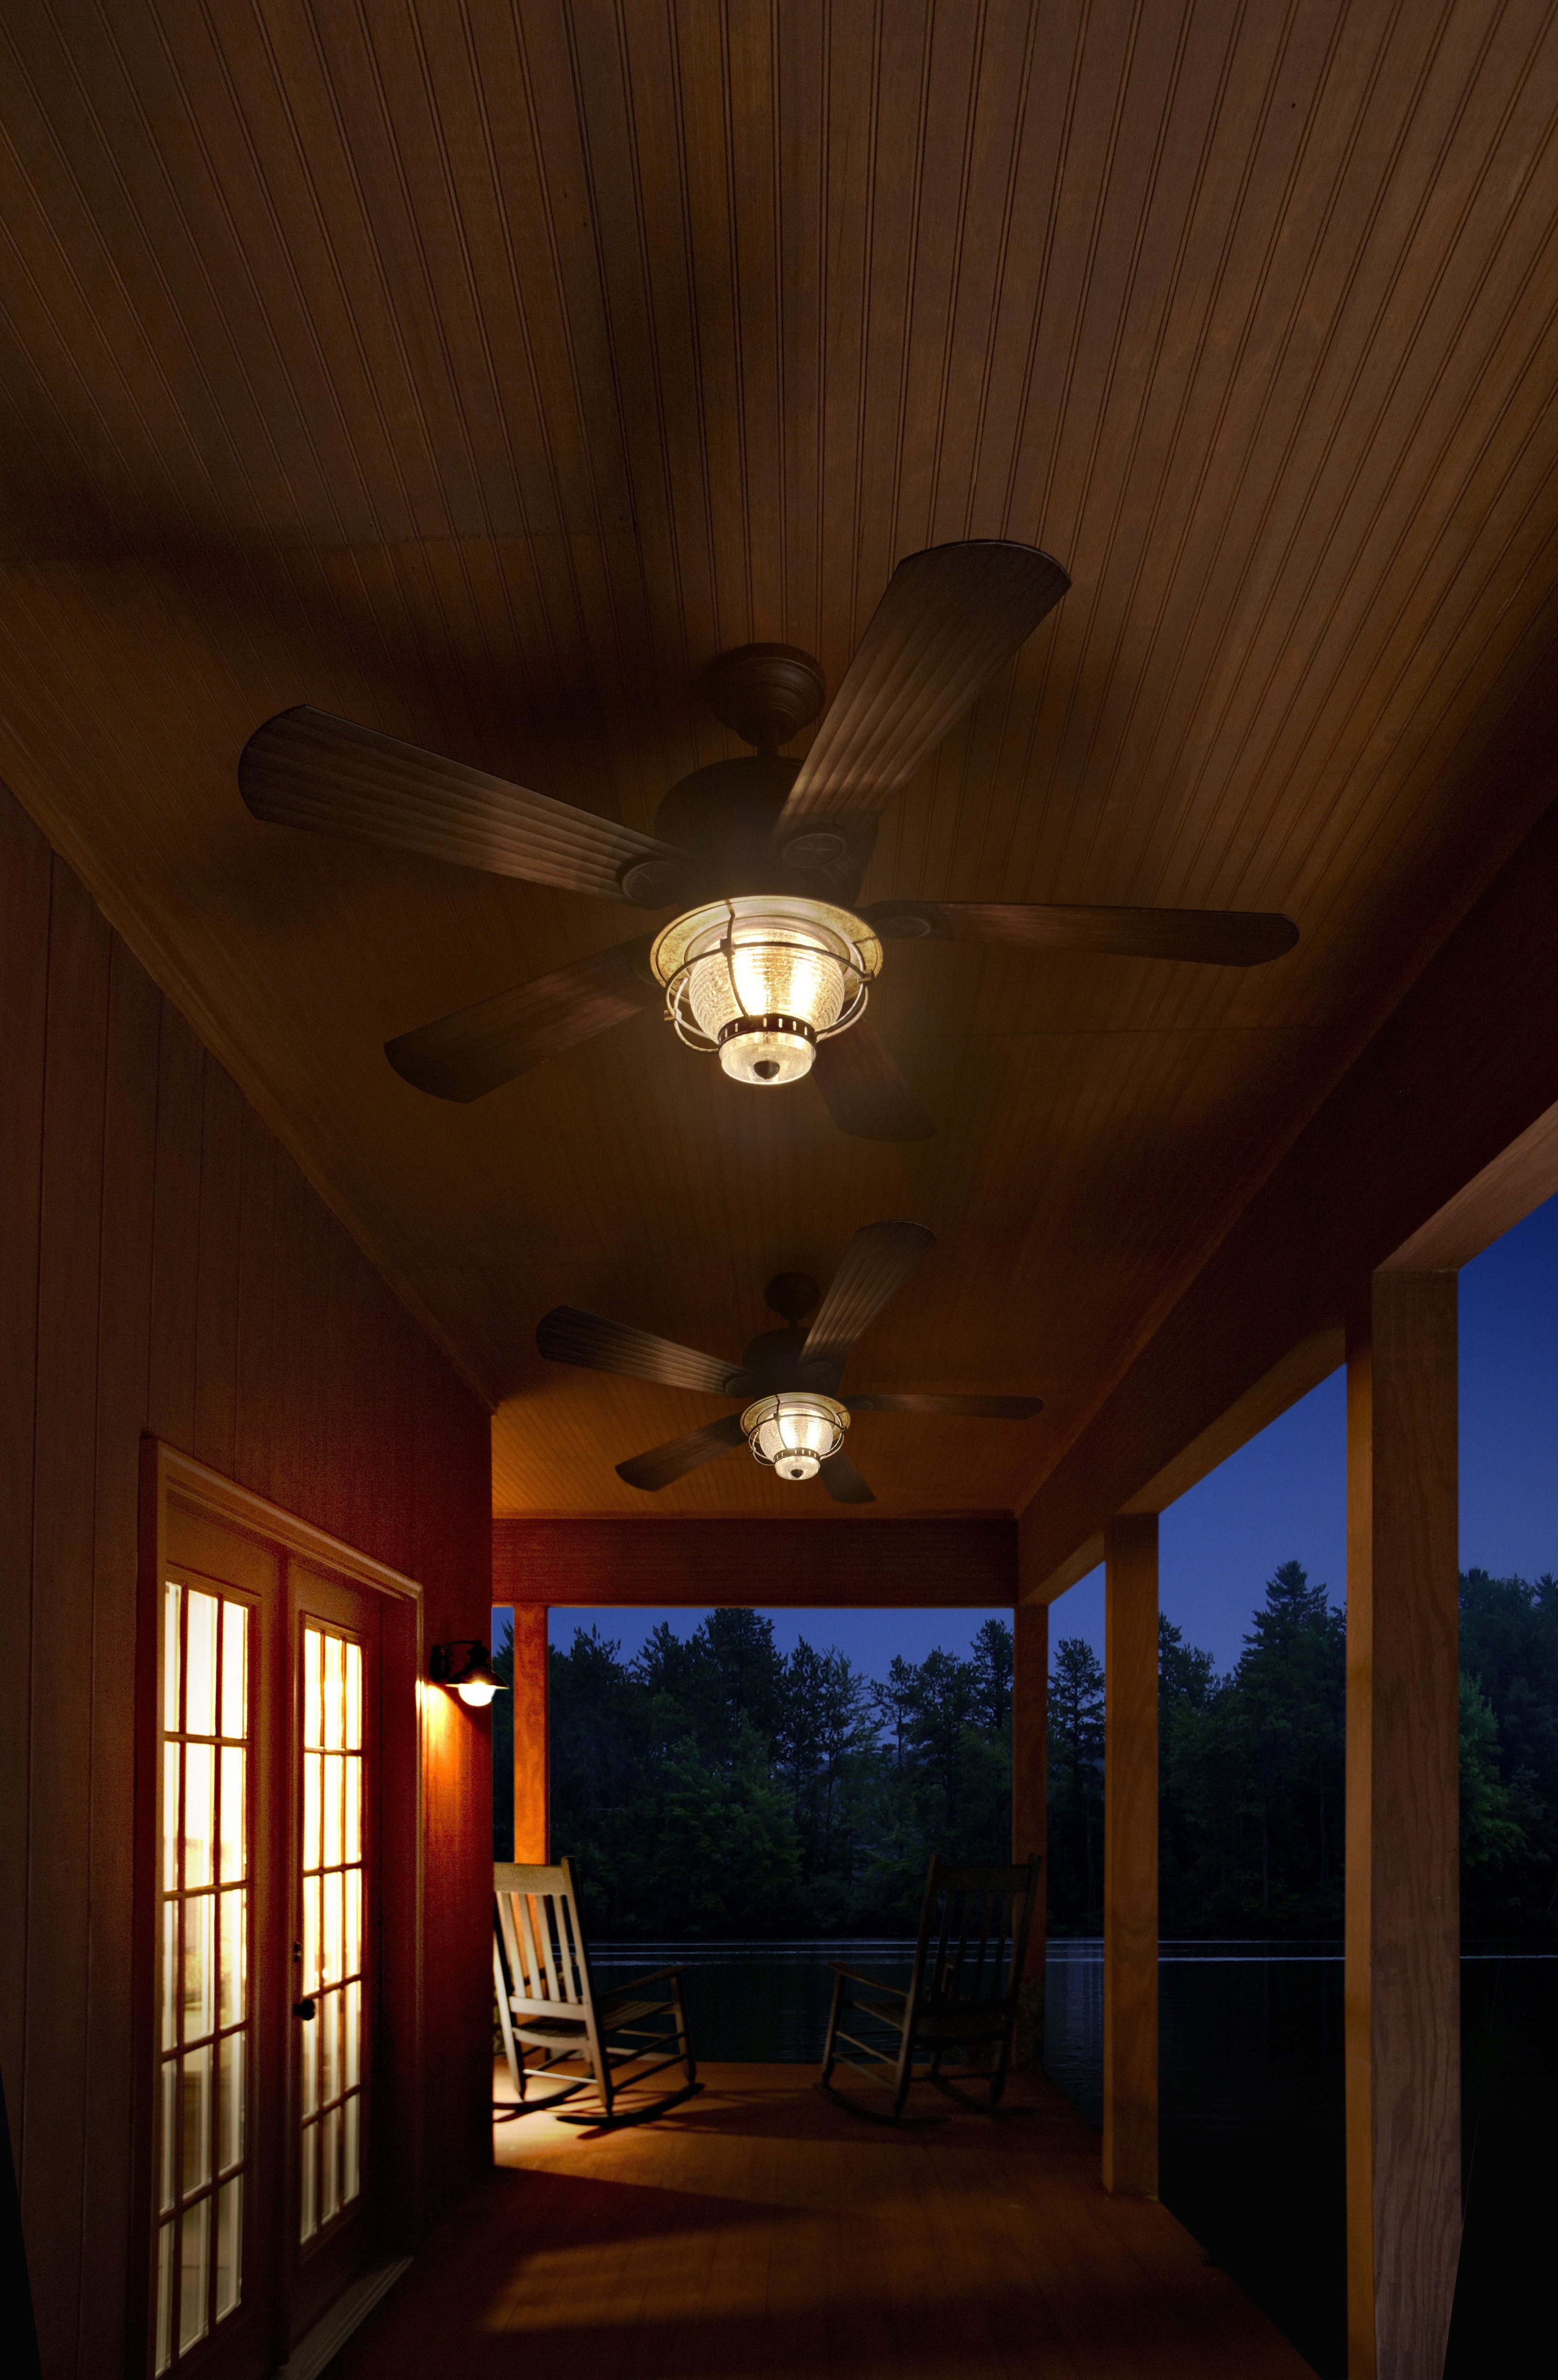 Outdoor Ceiling Fans For Porches For 2019 Be Prepared For The Summer Heat With Harbor Breeze Outdoor Ceiling (View 9 of 20)